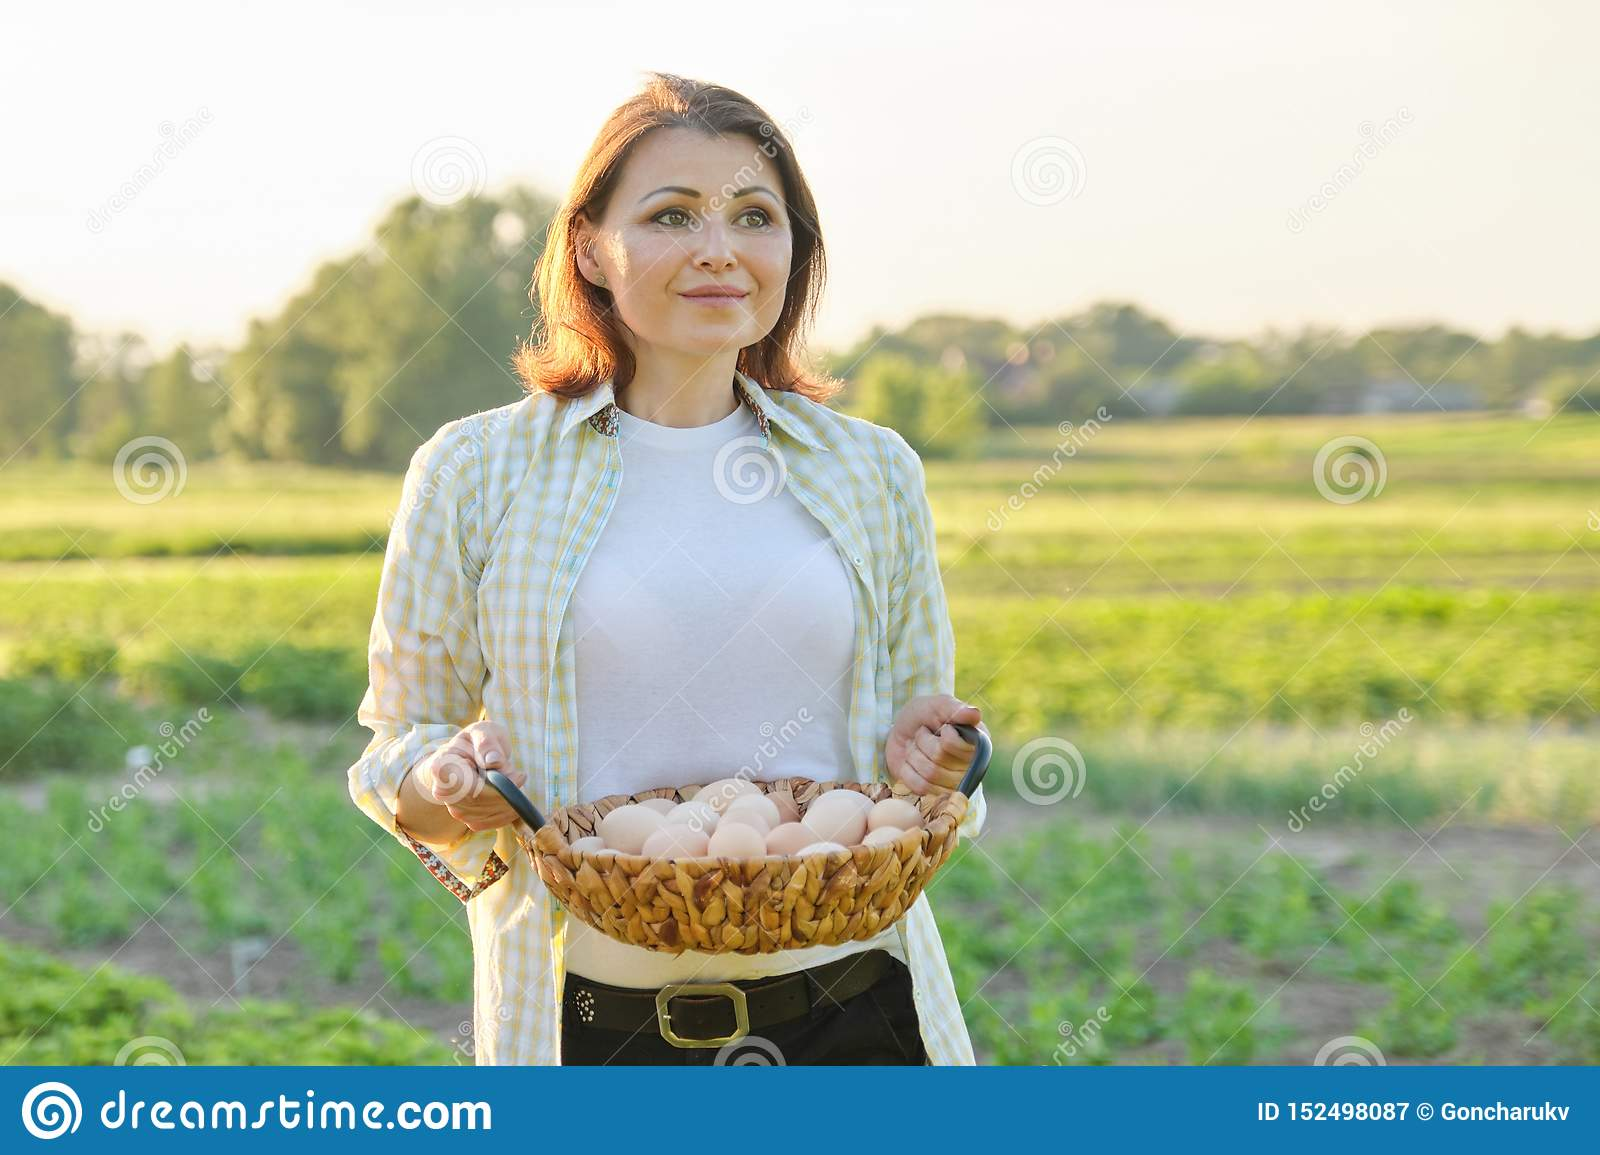 Outdoor portrait of farmer woman with basket of fresh chicken eggs, farm